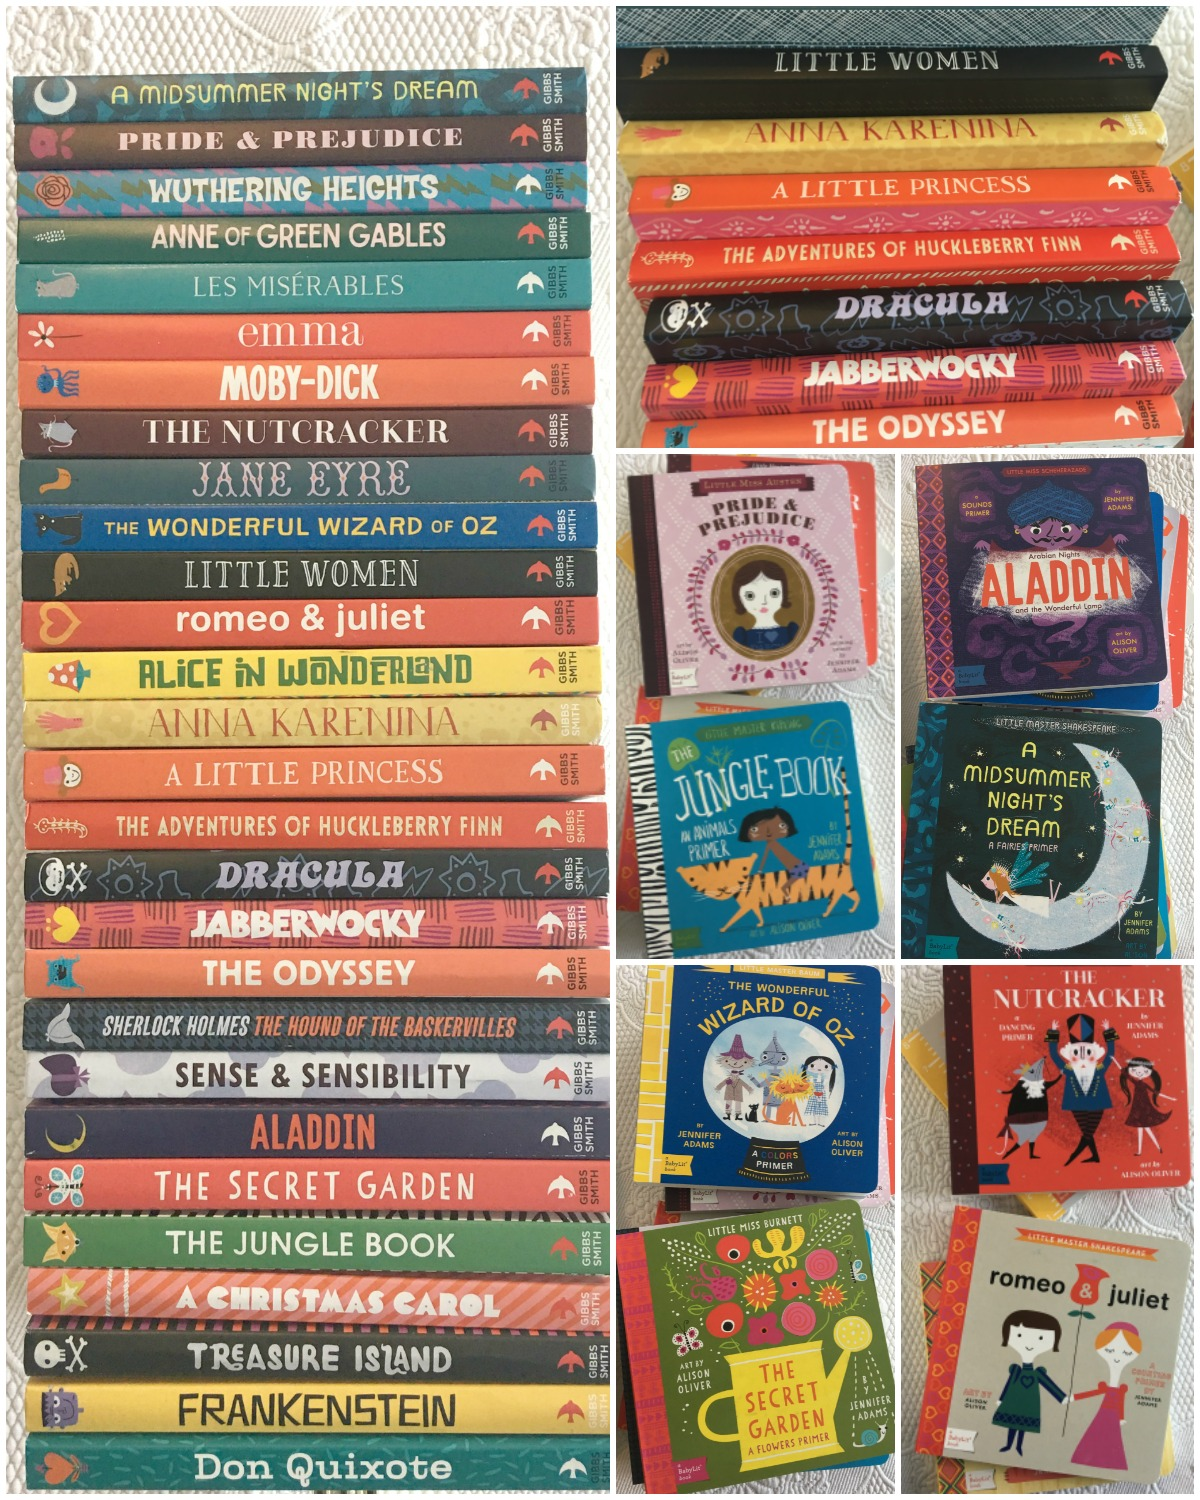 Encourage Kid's Love of Reading with these Classic Books by BabyLit - Powered by Mom